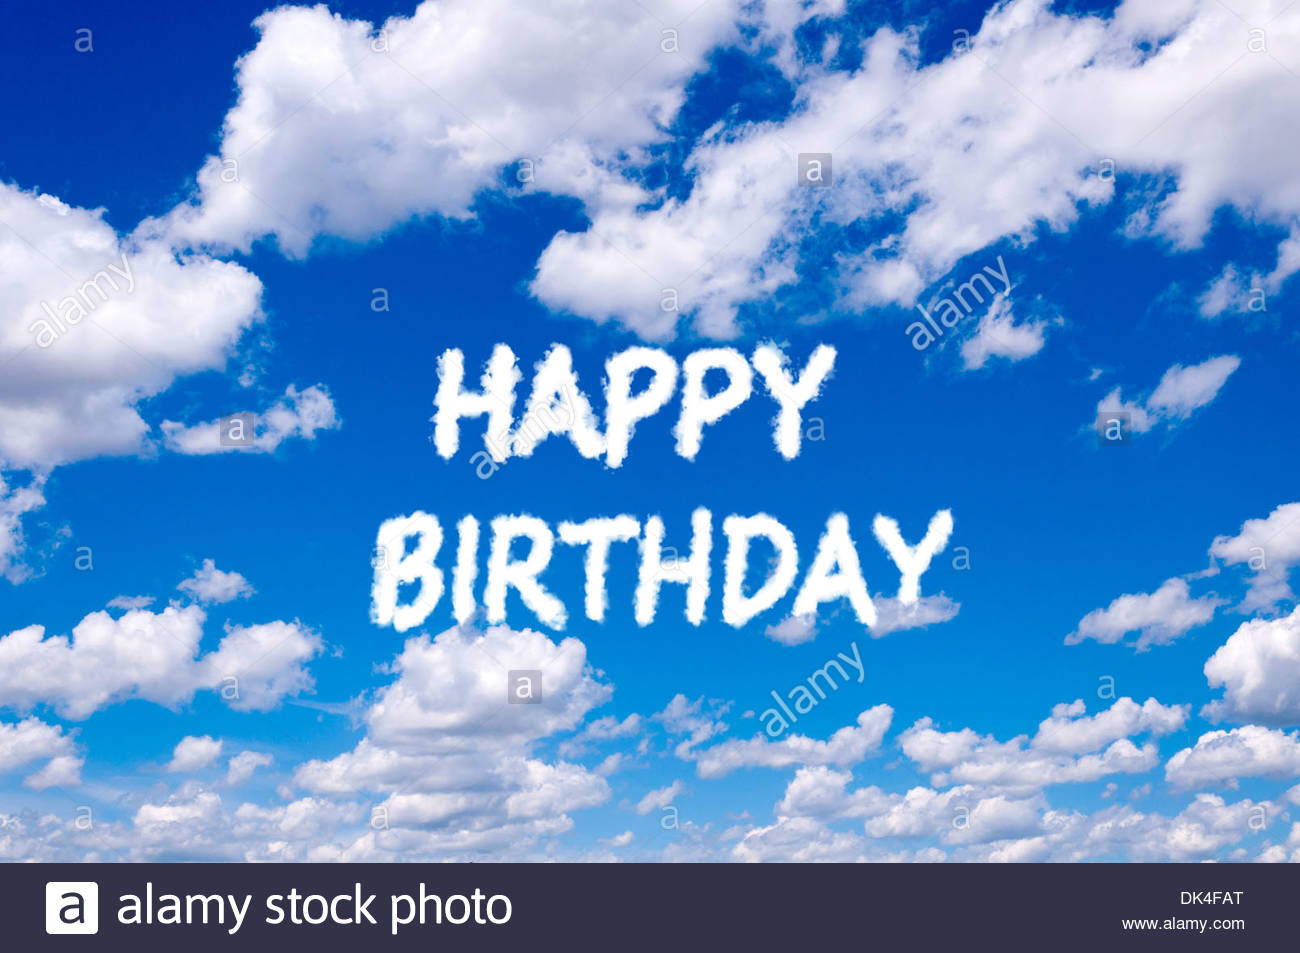 happy birthday sky ; happy-birthday-sign-clouds-on-the-clear-blue-sky-DK4FAT